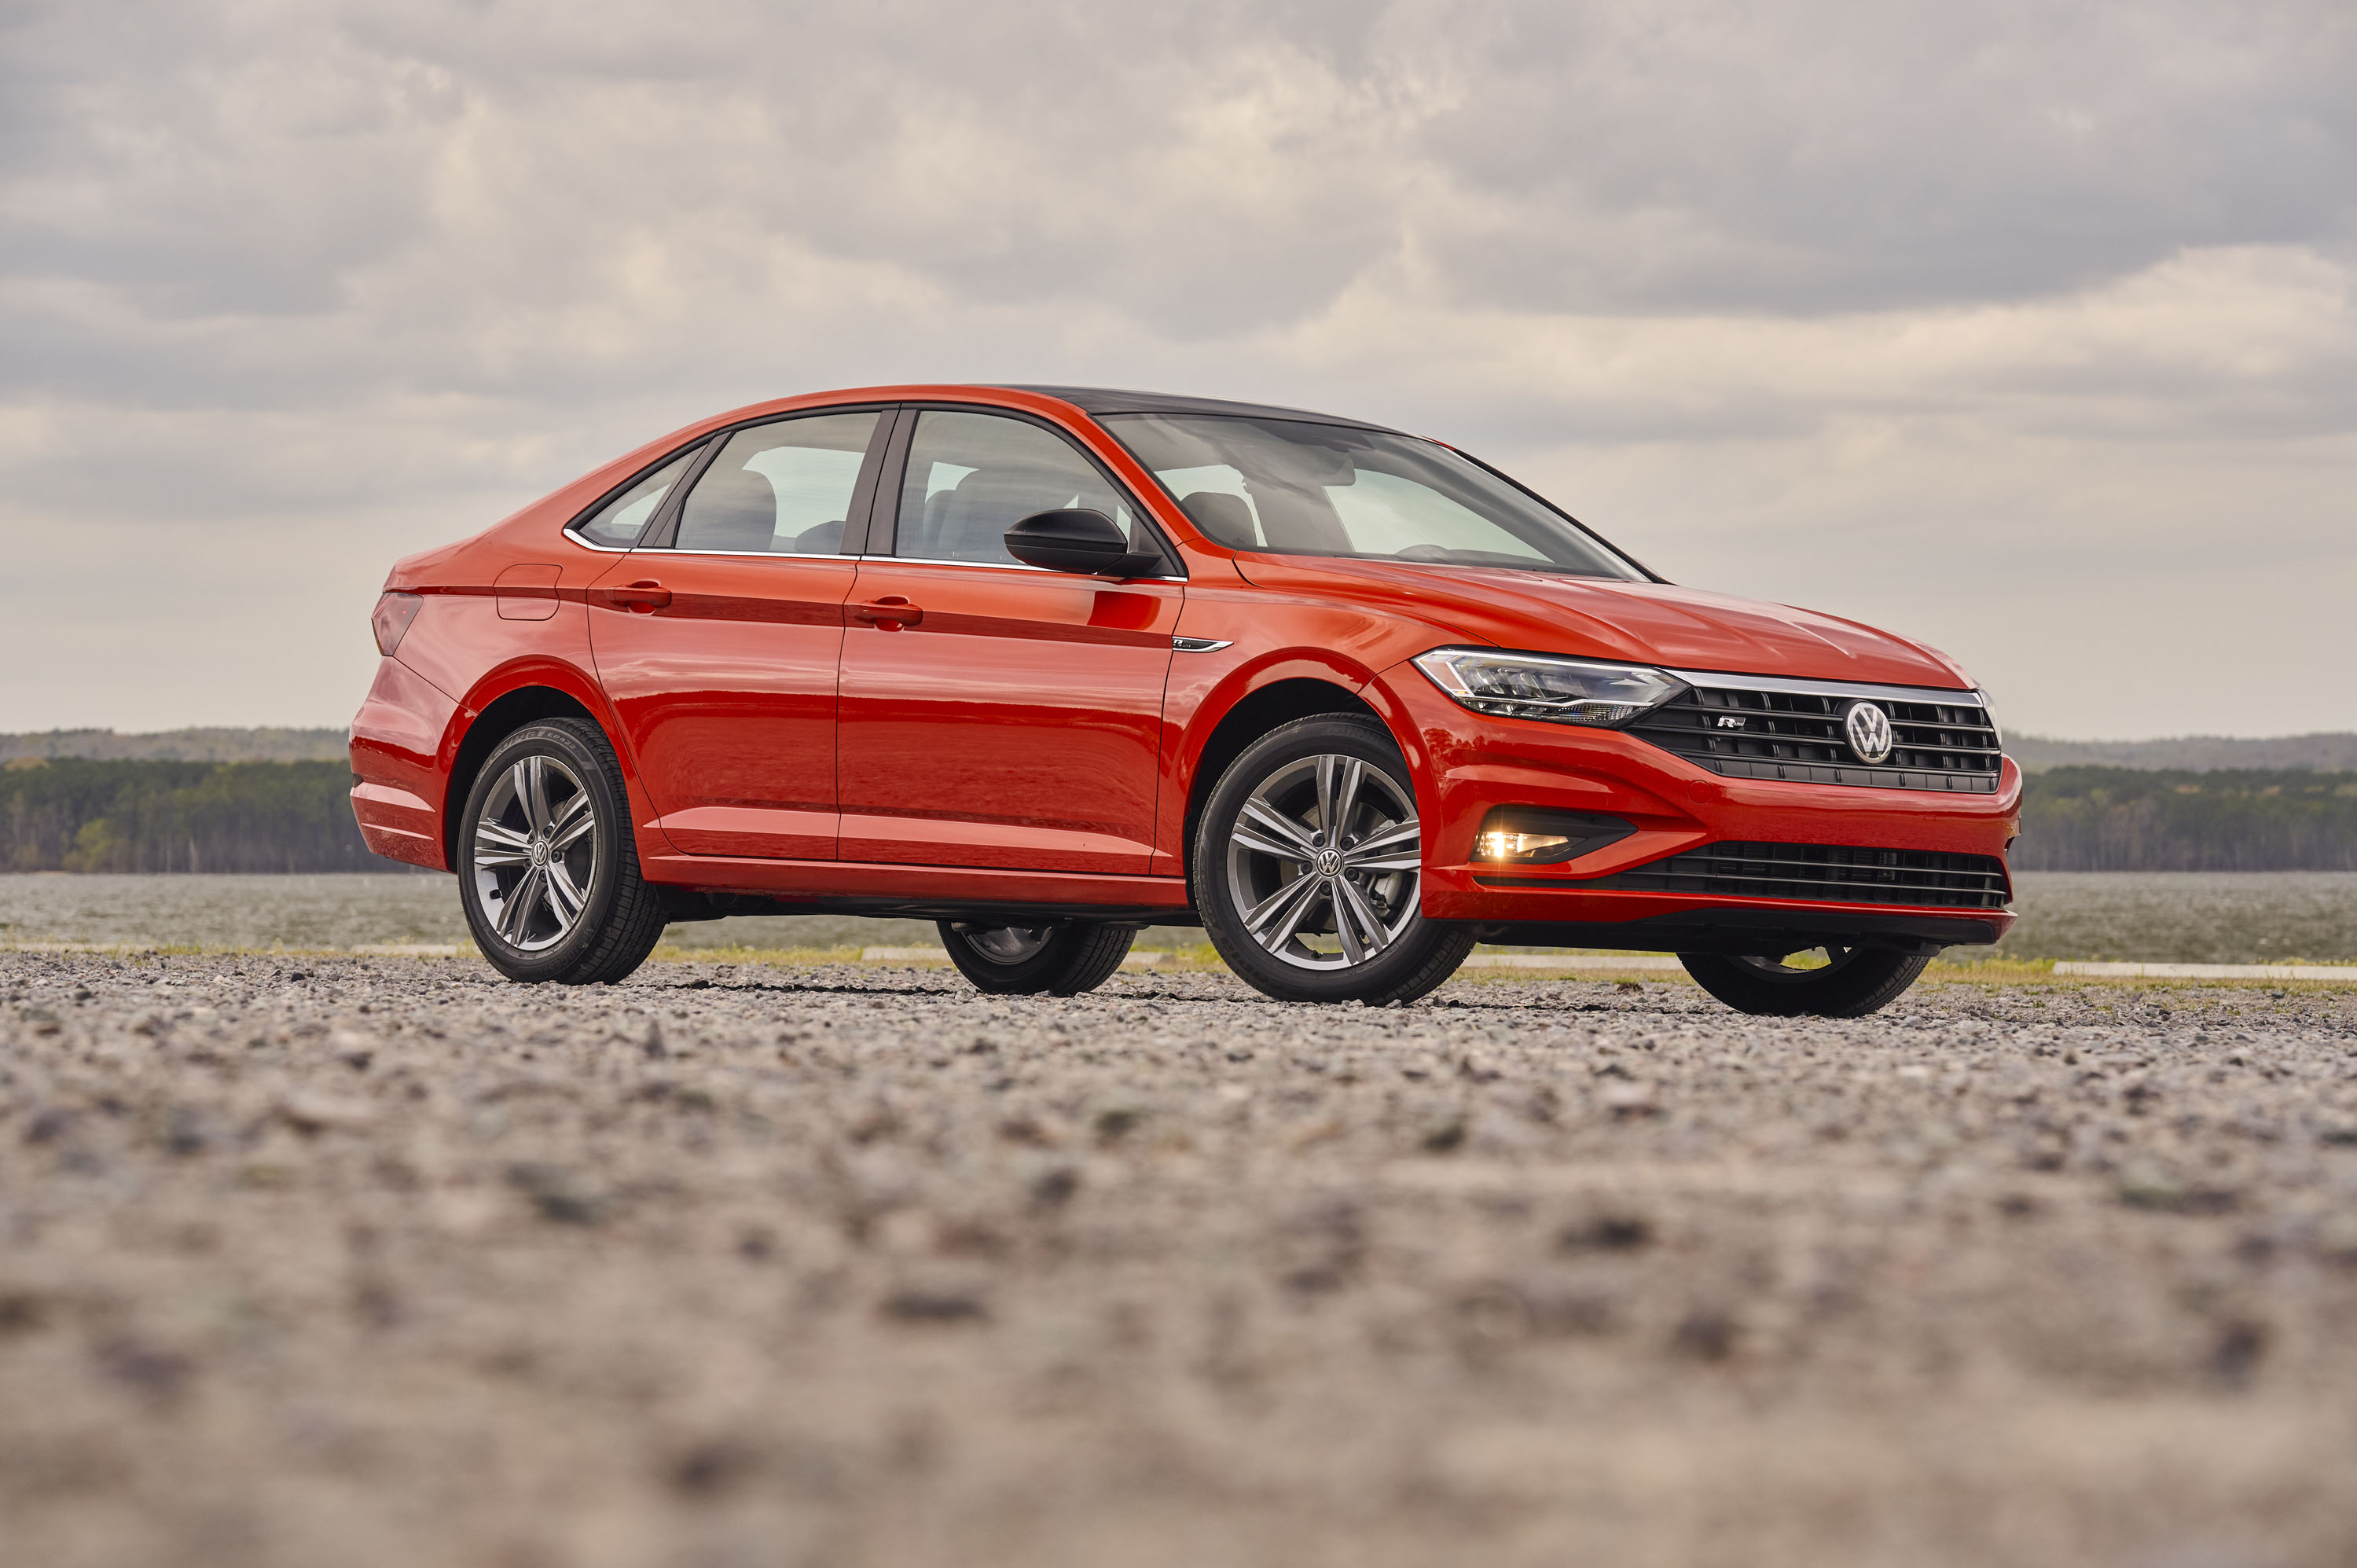 2019 Volkswagen Jetta Vw Review Ratings Specs Prices And Photos The Car Connection